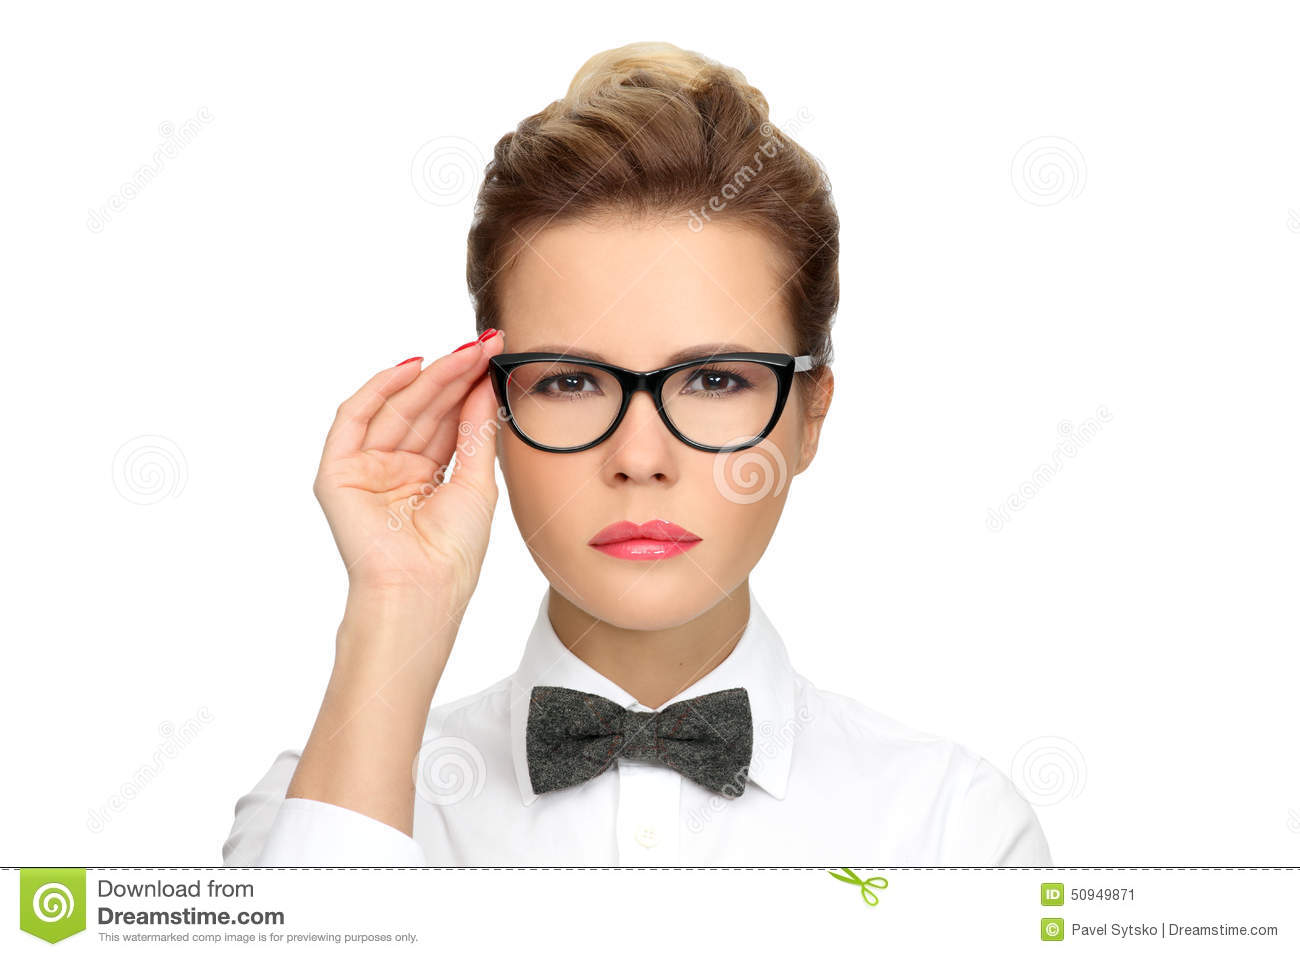 Diagram Bow Tie Electrical Wiring Tying Successful Business Woman Wearing Glasses A White Shirt Template Excel